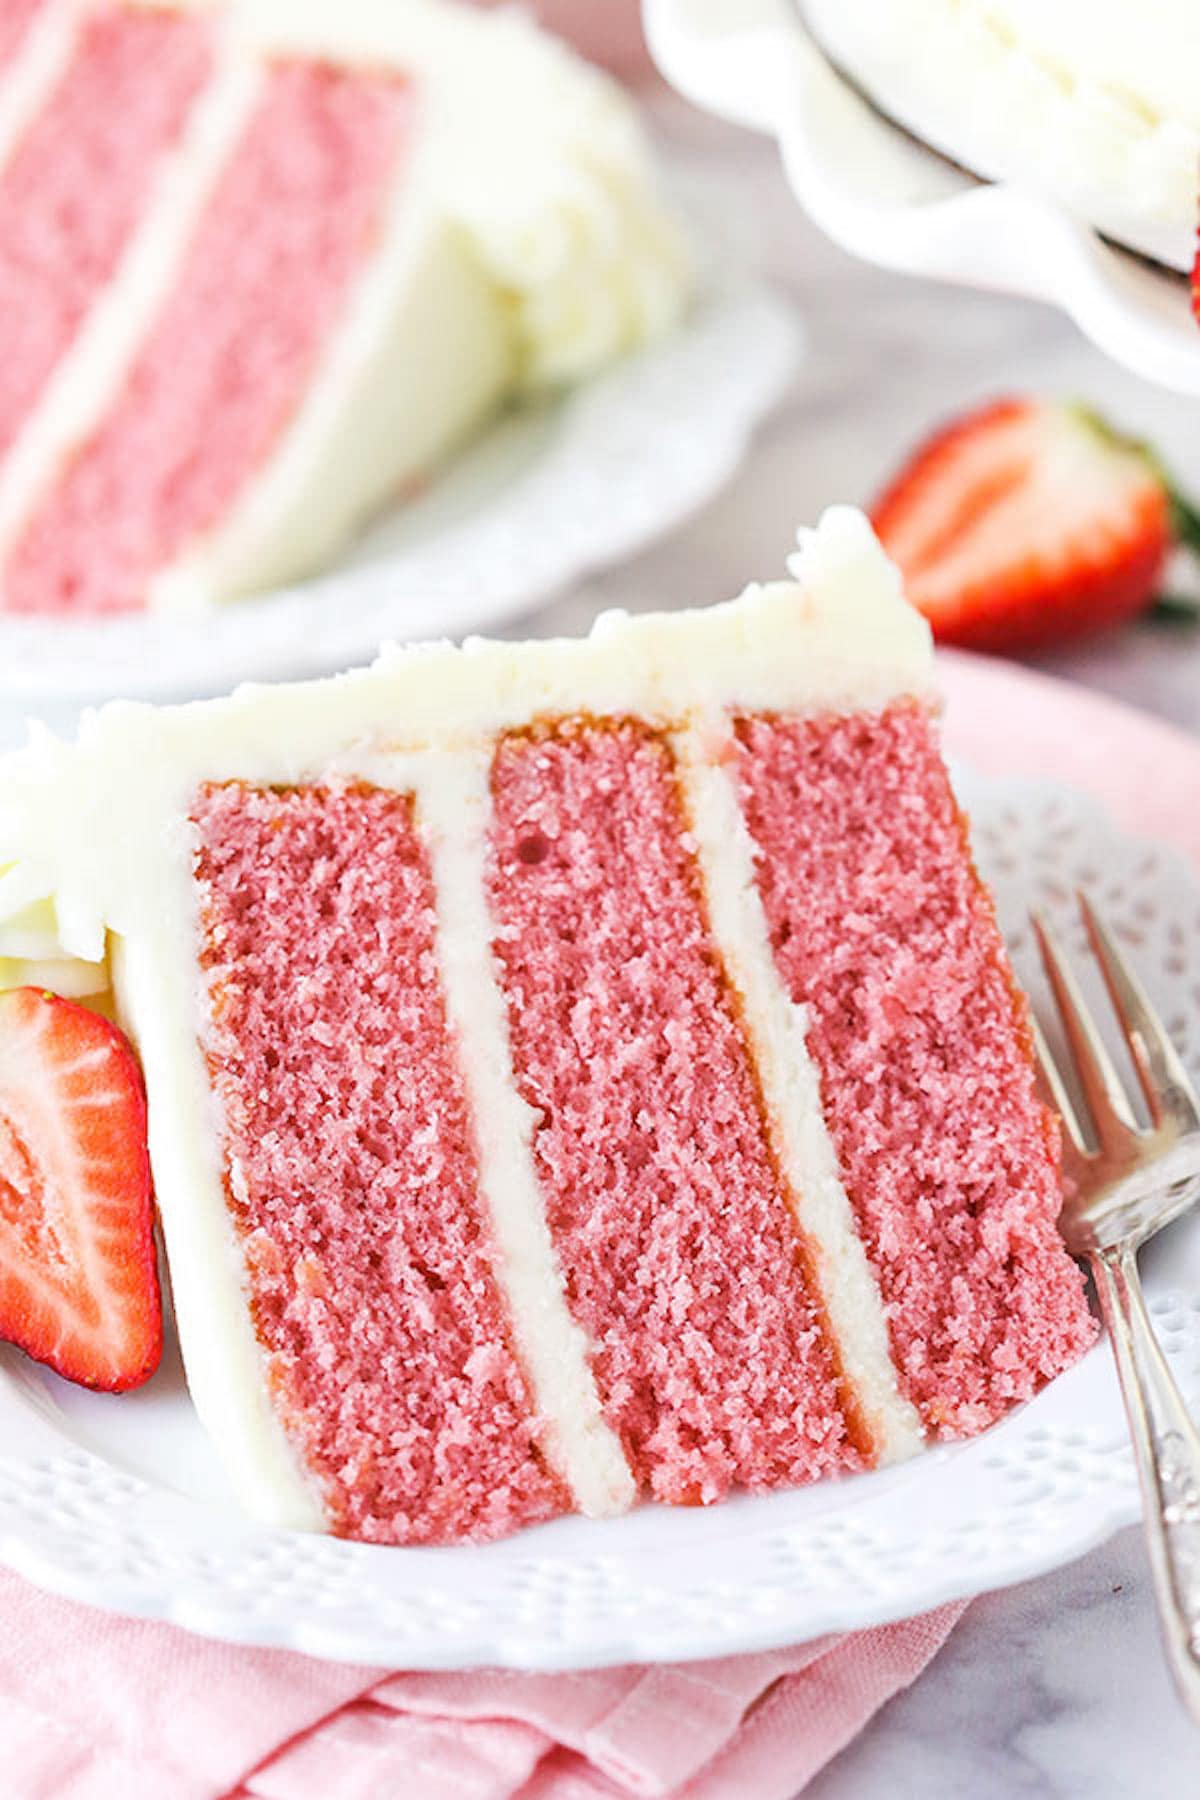 A Slice of Strawberry Cake on a White Dessert Plate